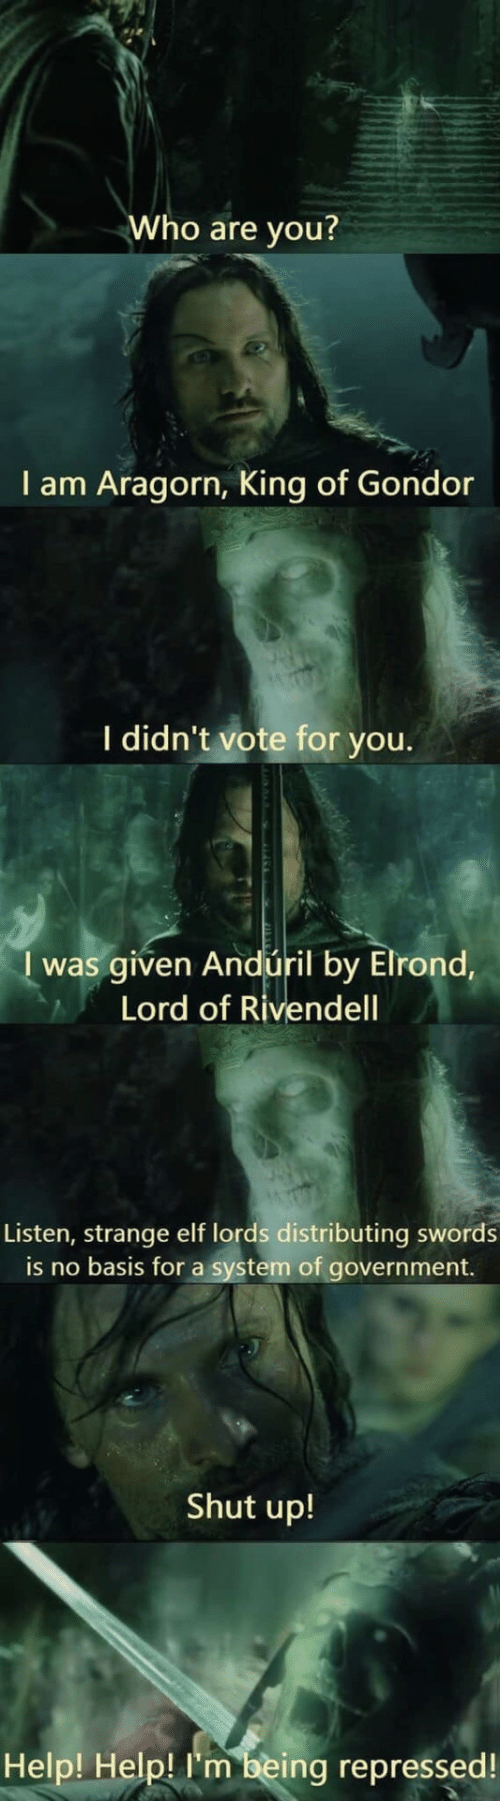 listen: Who are you?  I am Aragorn, King of Gondor  I didn't vote for you.  I was given Andúril by Elrond,  Lord of Rivendell  Listen, strange elf lords distributing swords  is no basis for a system of government.  Shut up!  Help! Help! I'm being repressed!